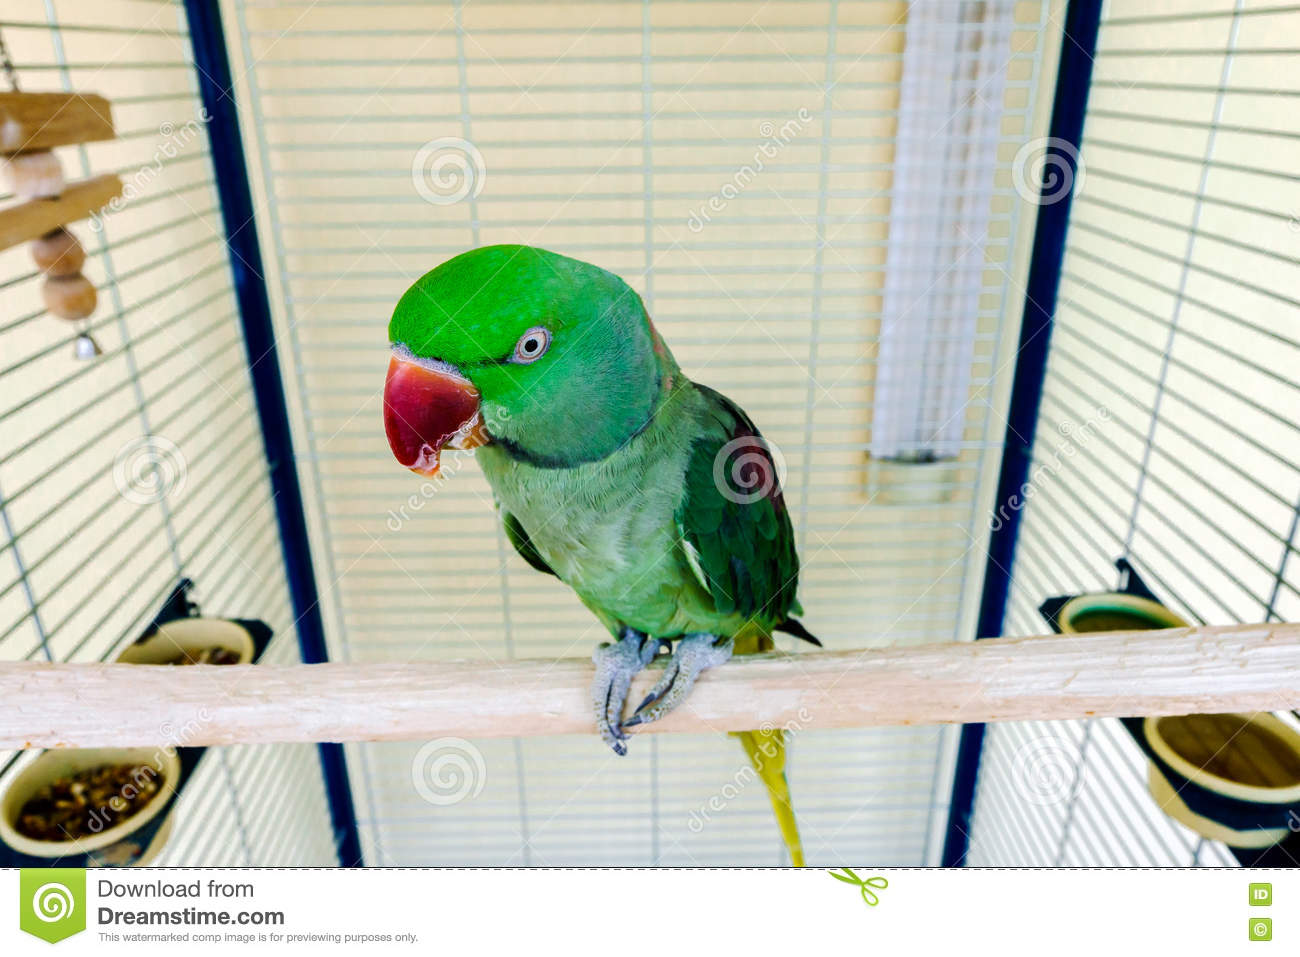 Home pets: wavy parrot - maintenance and care